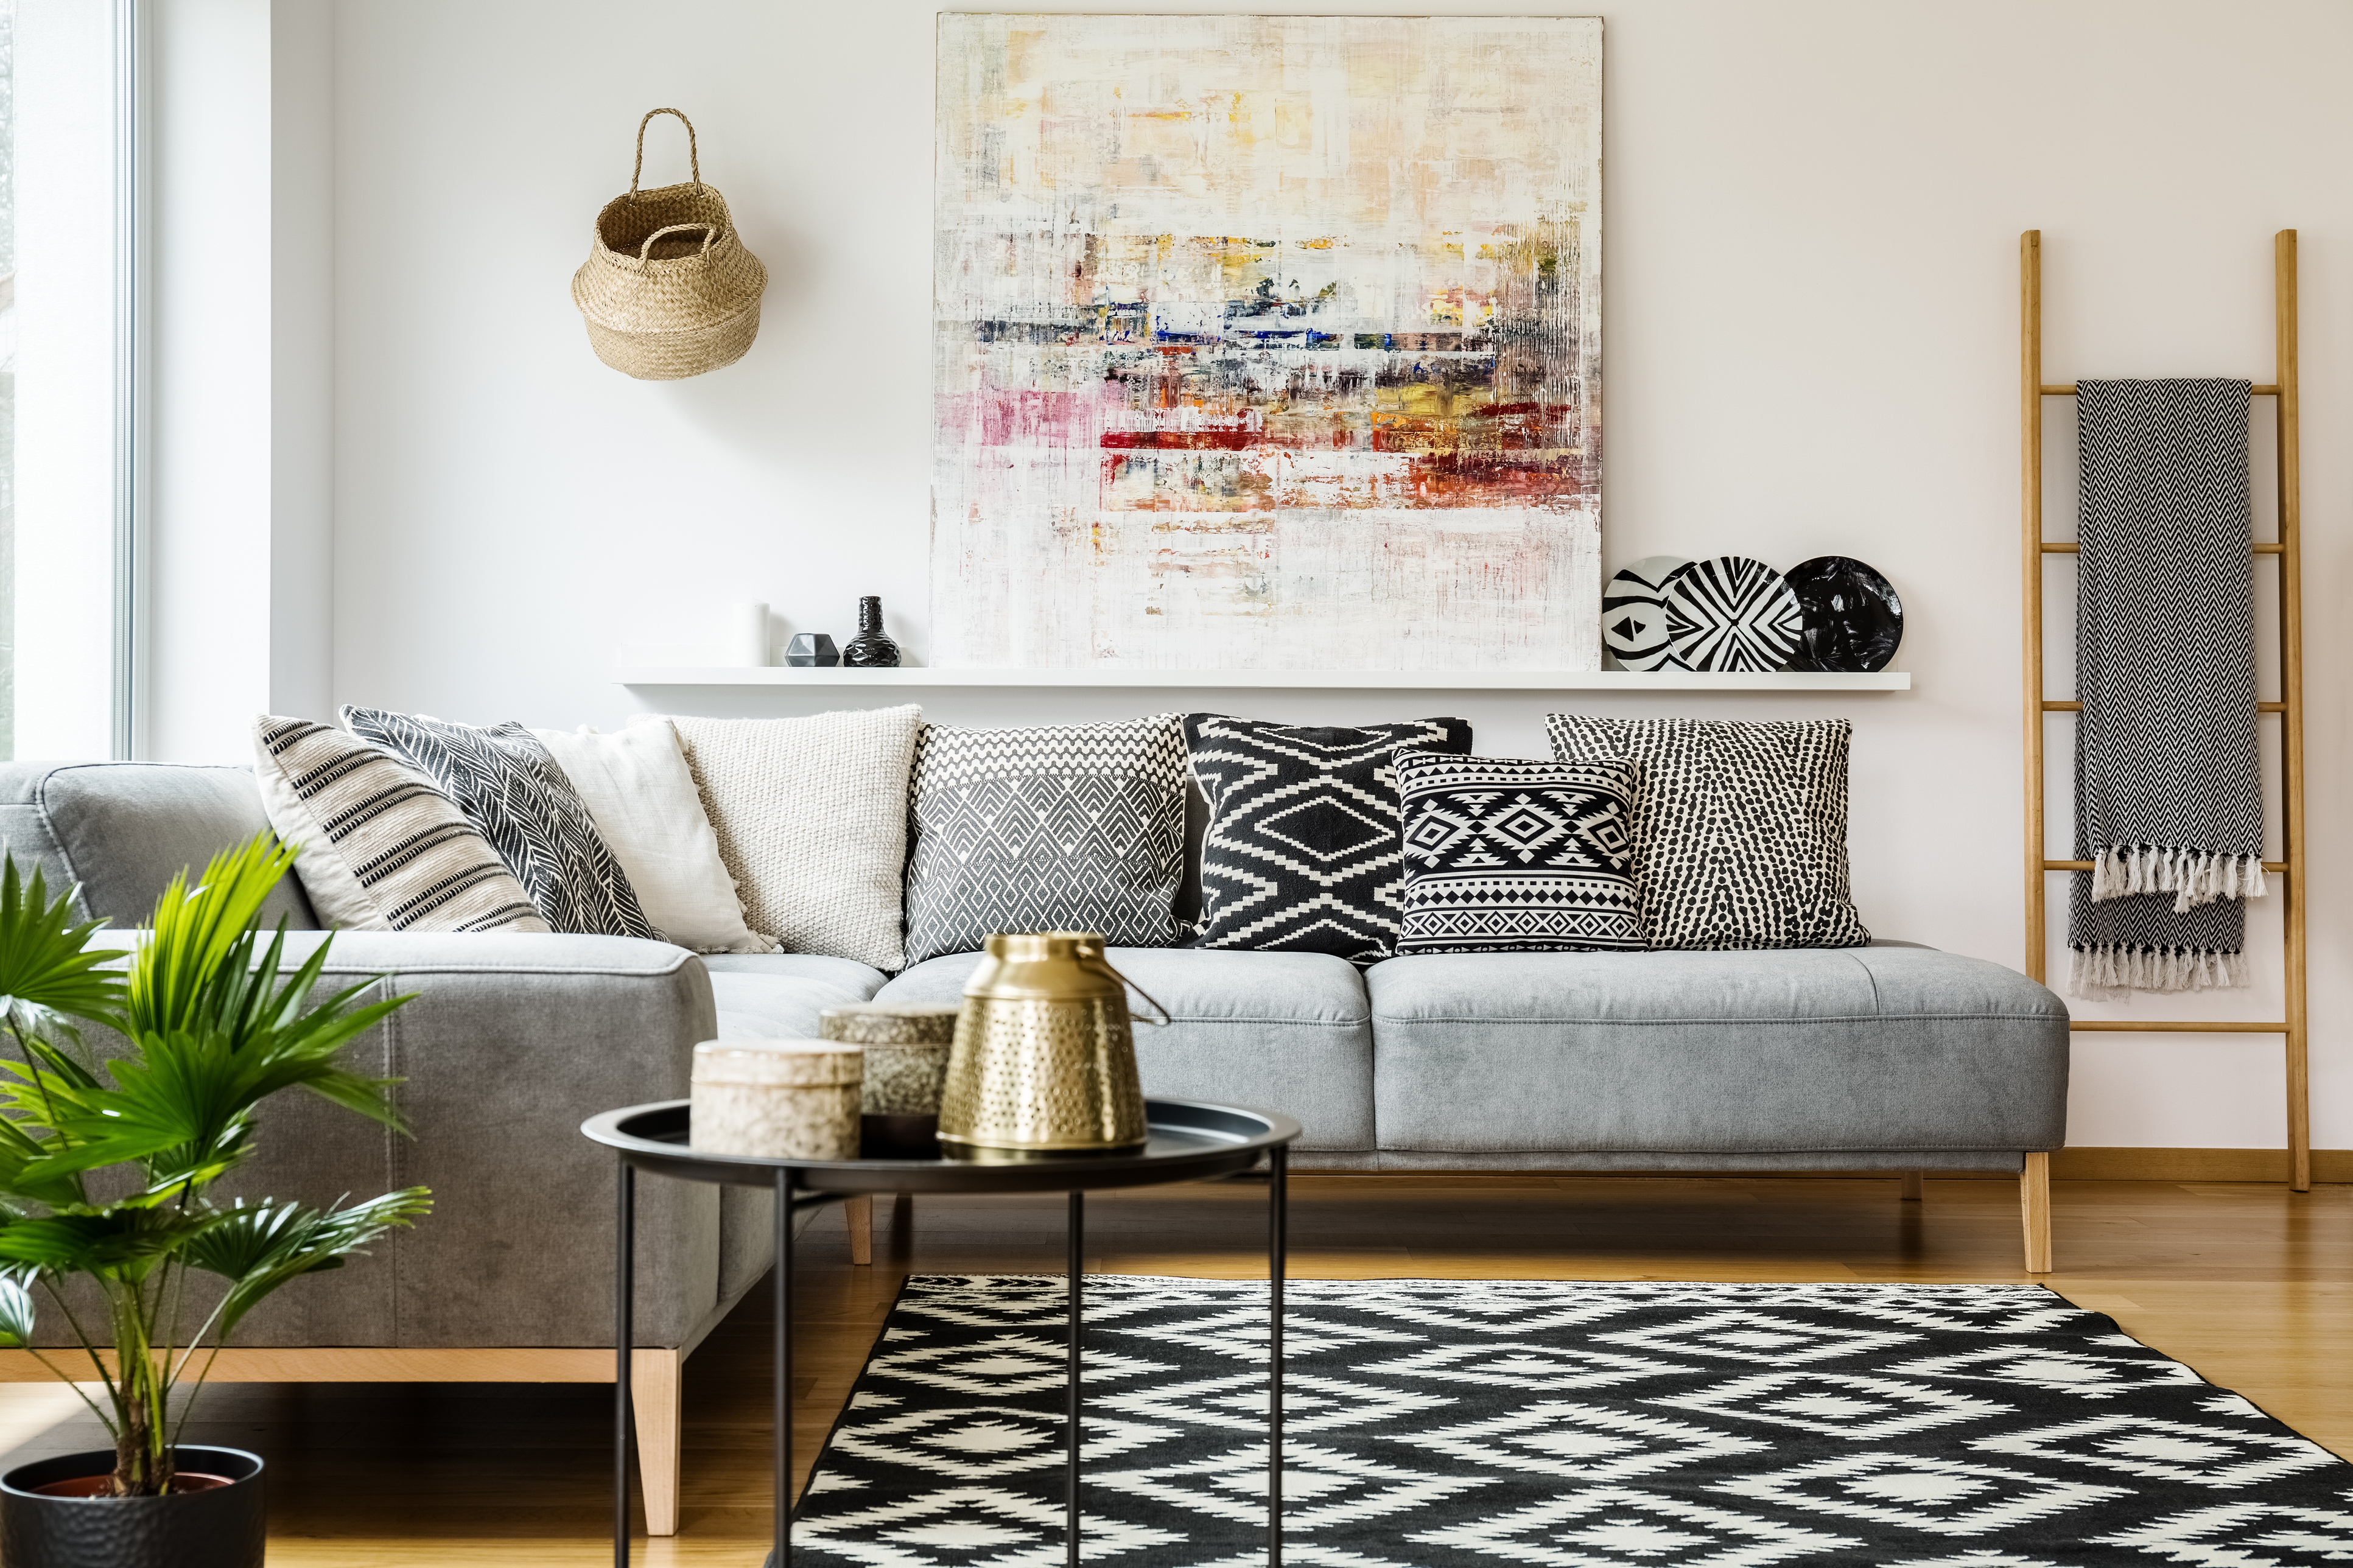 Best And Worst Sofa Shops For 2019 Revealed Which News